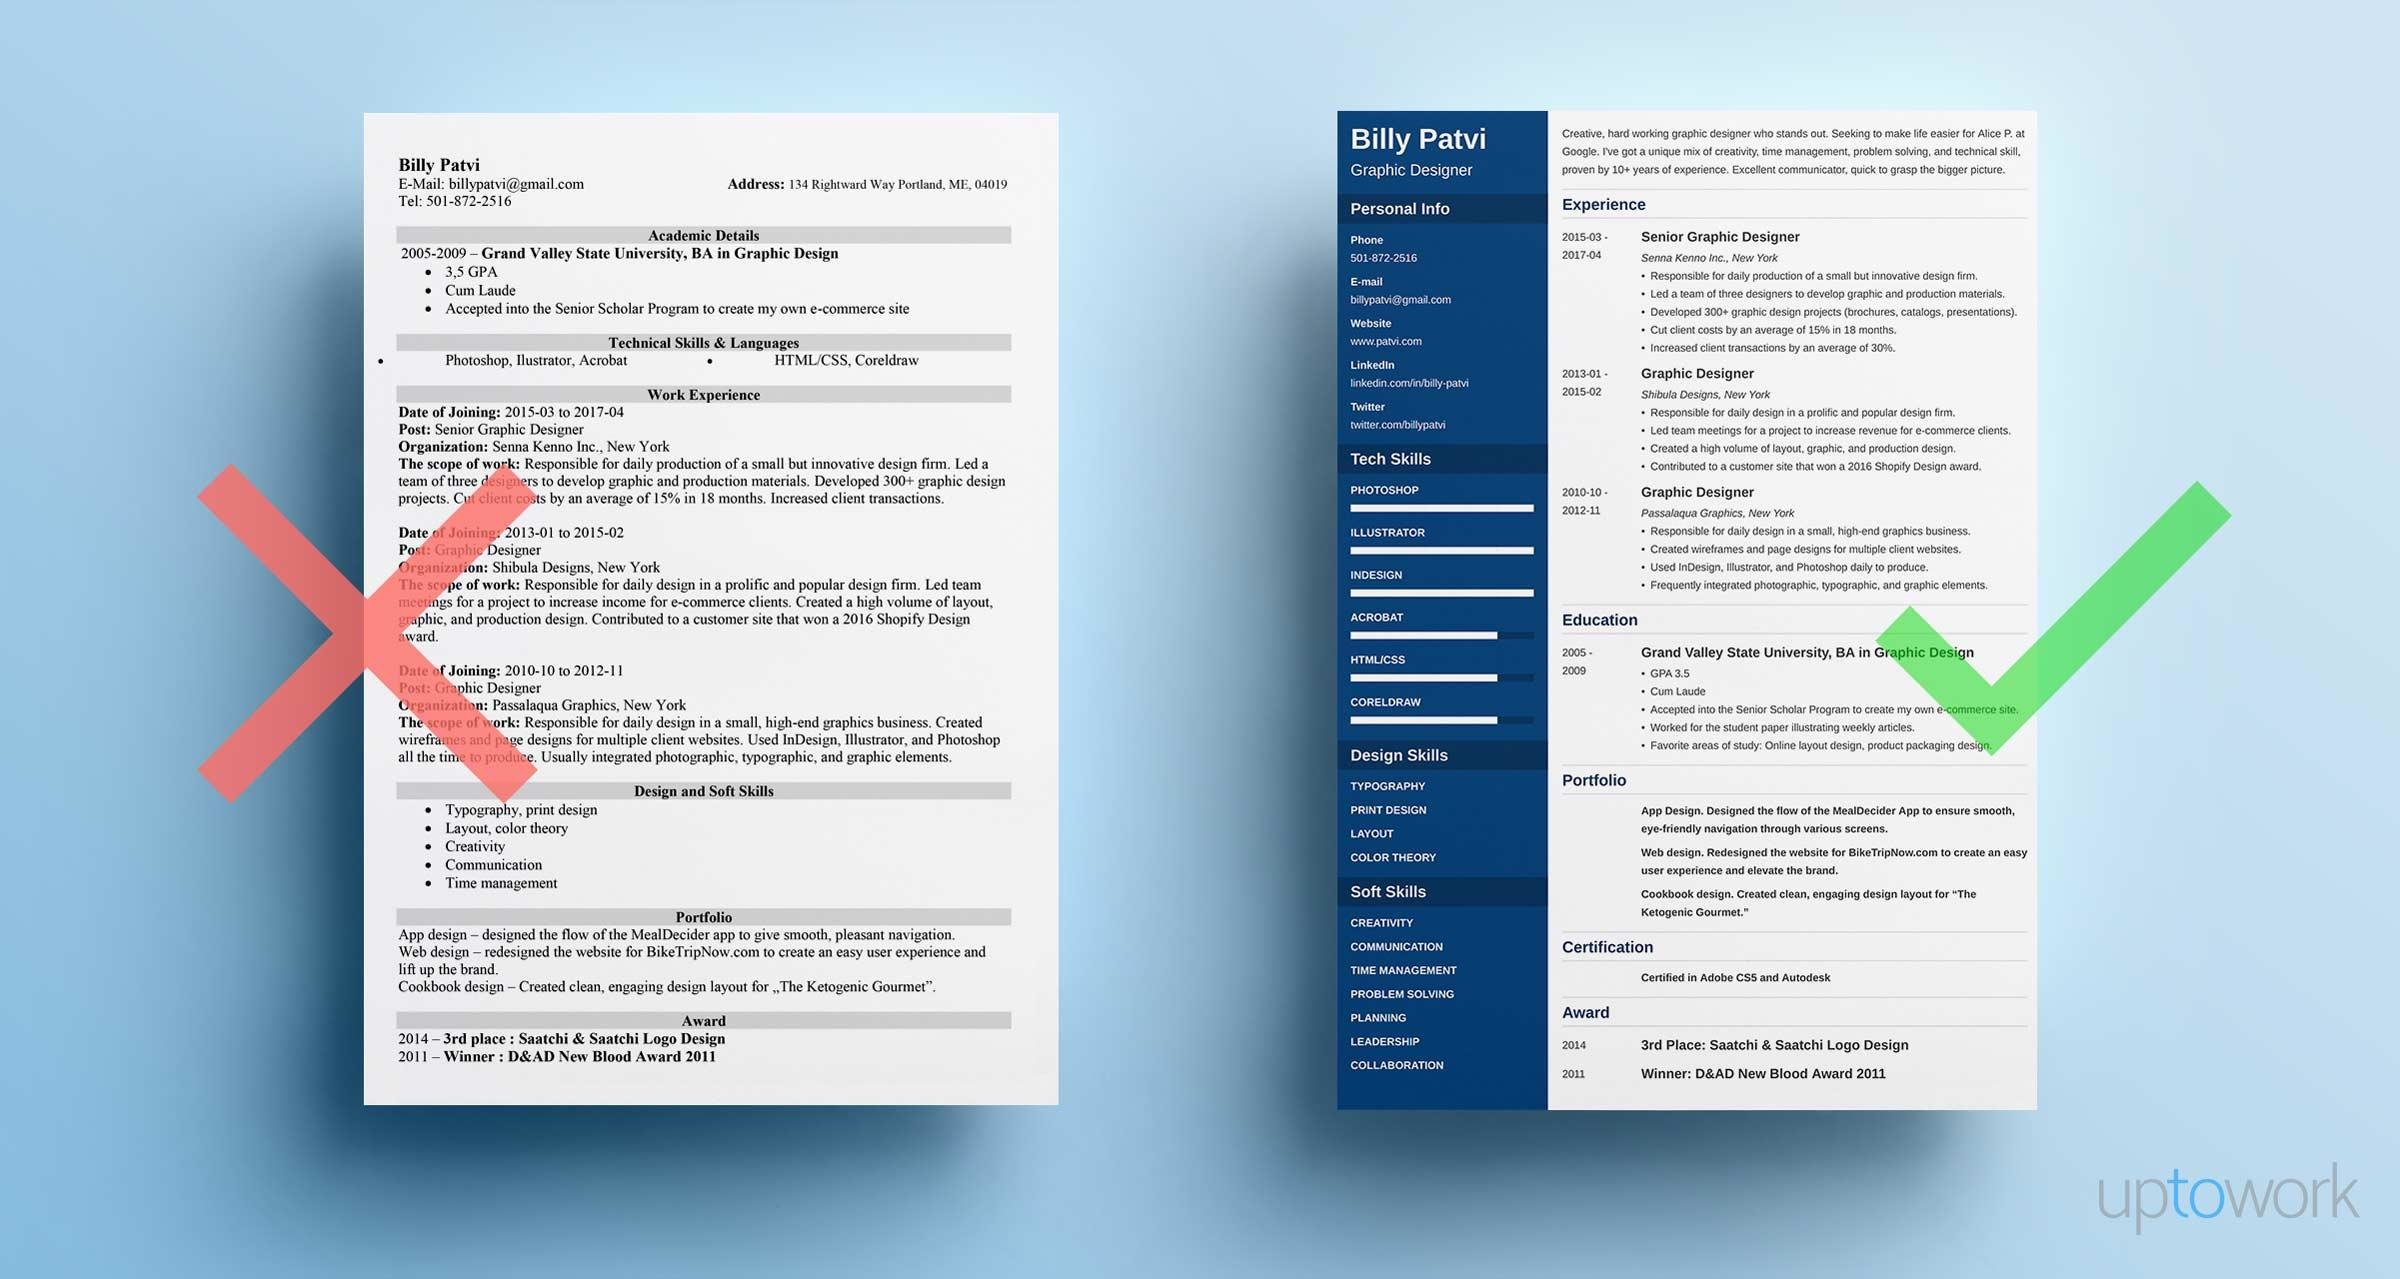 graphic designer resume examples and design tips for samples travel agent manufacturing Resume Graphic Designer Resume Design